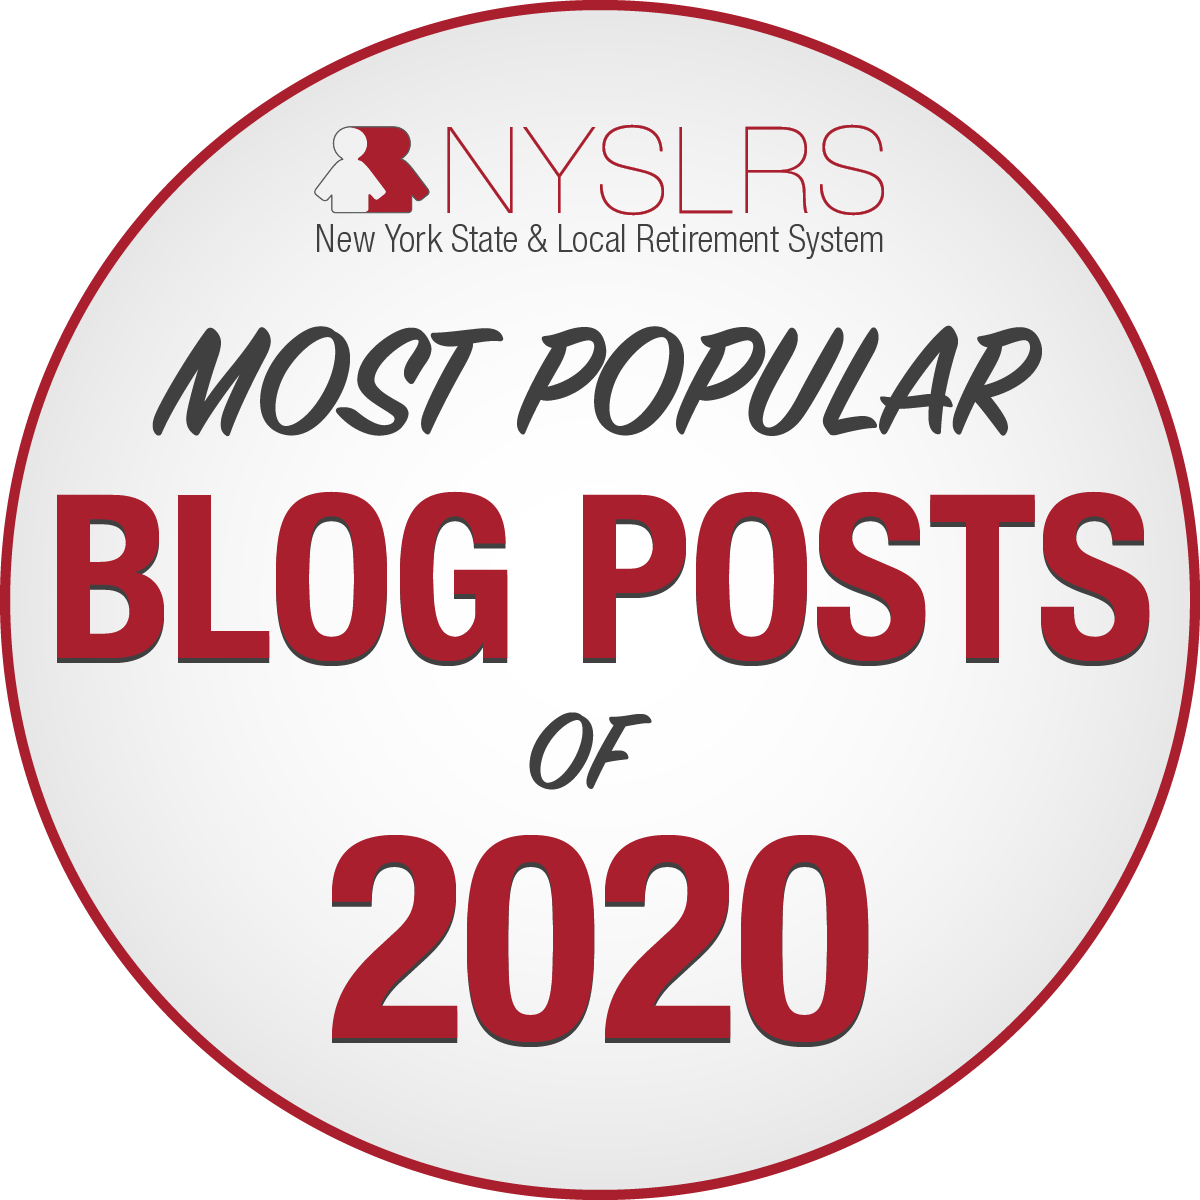 most popular blog posts of 2020